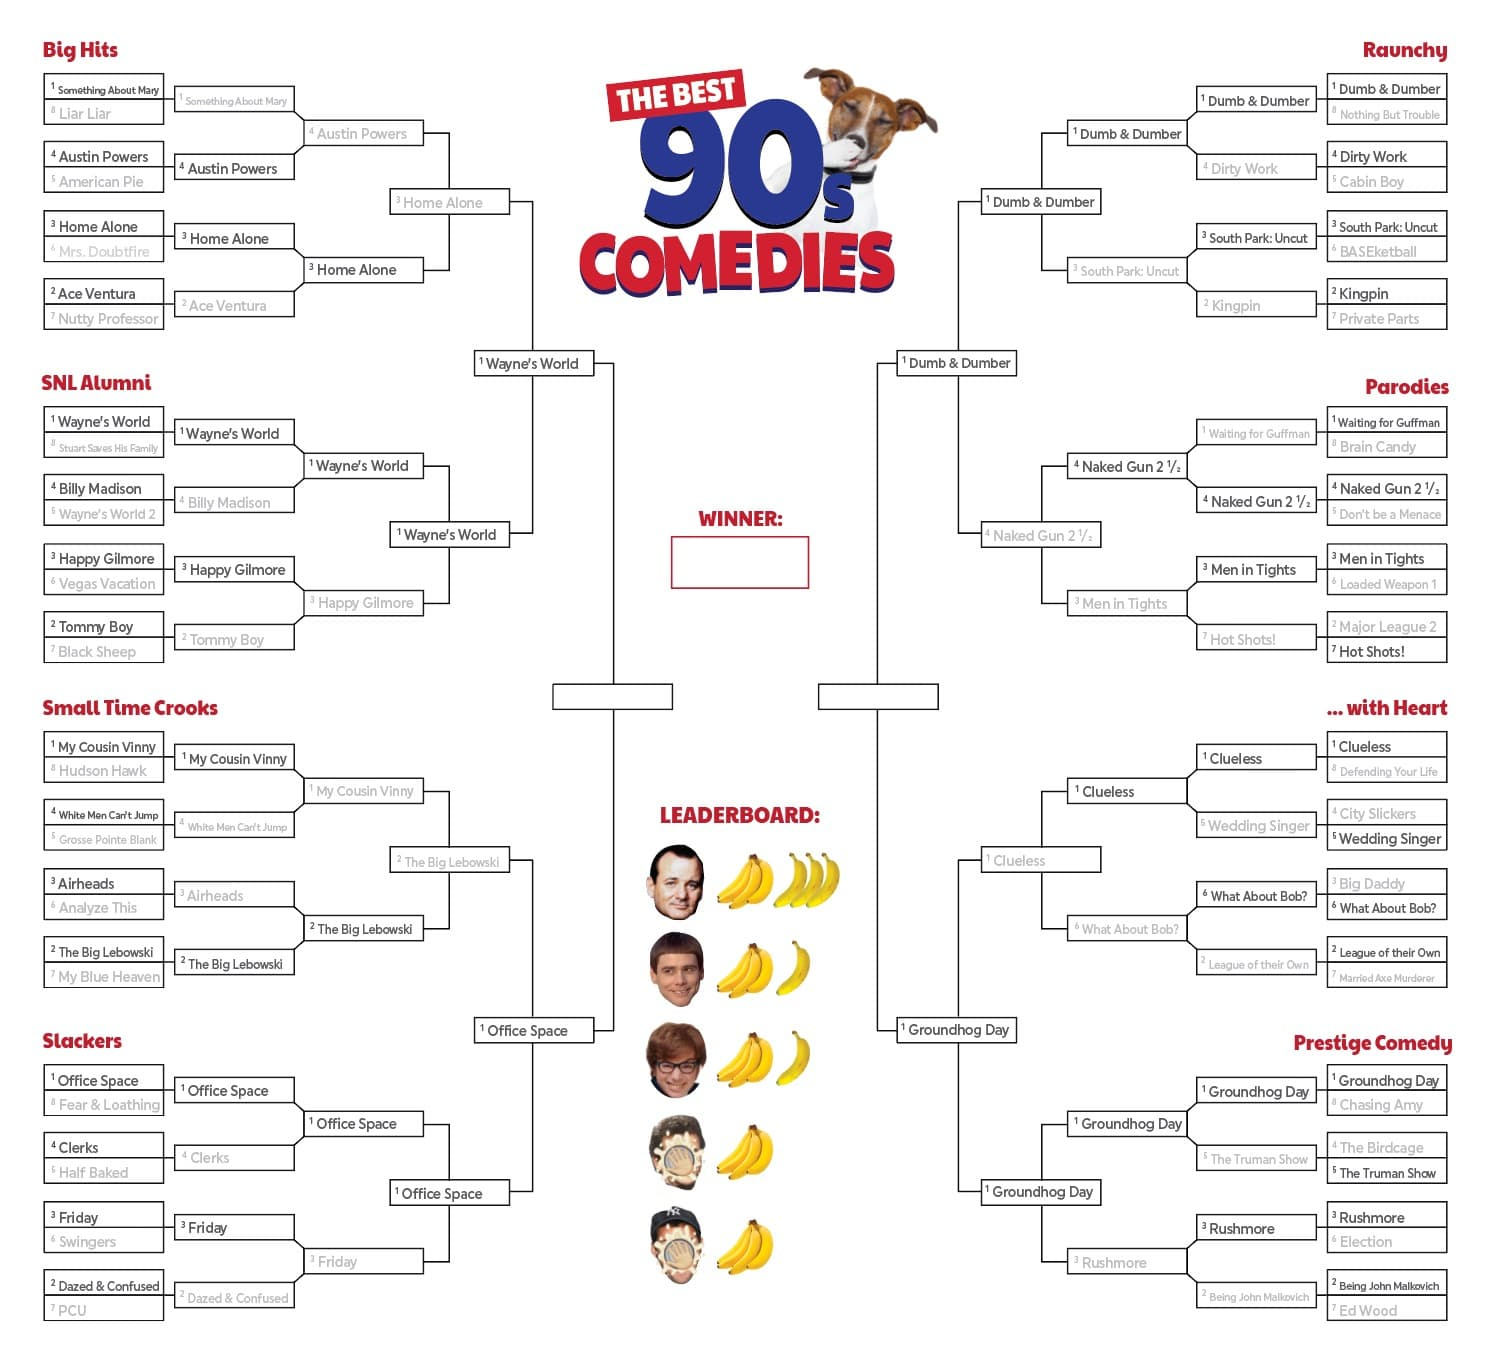 Best 90s Comedy Movies: Up-to-Date Bracket